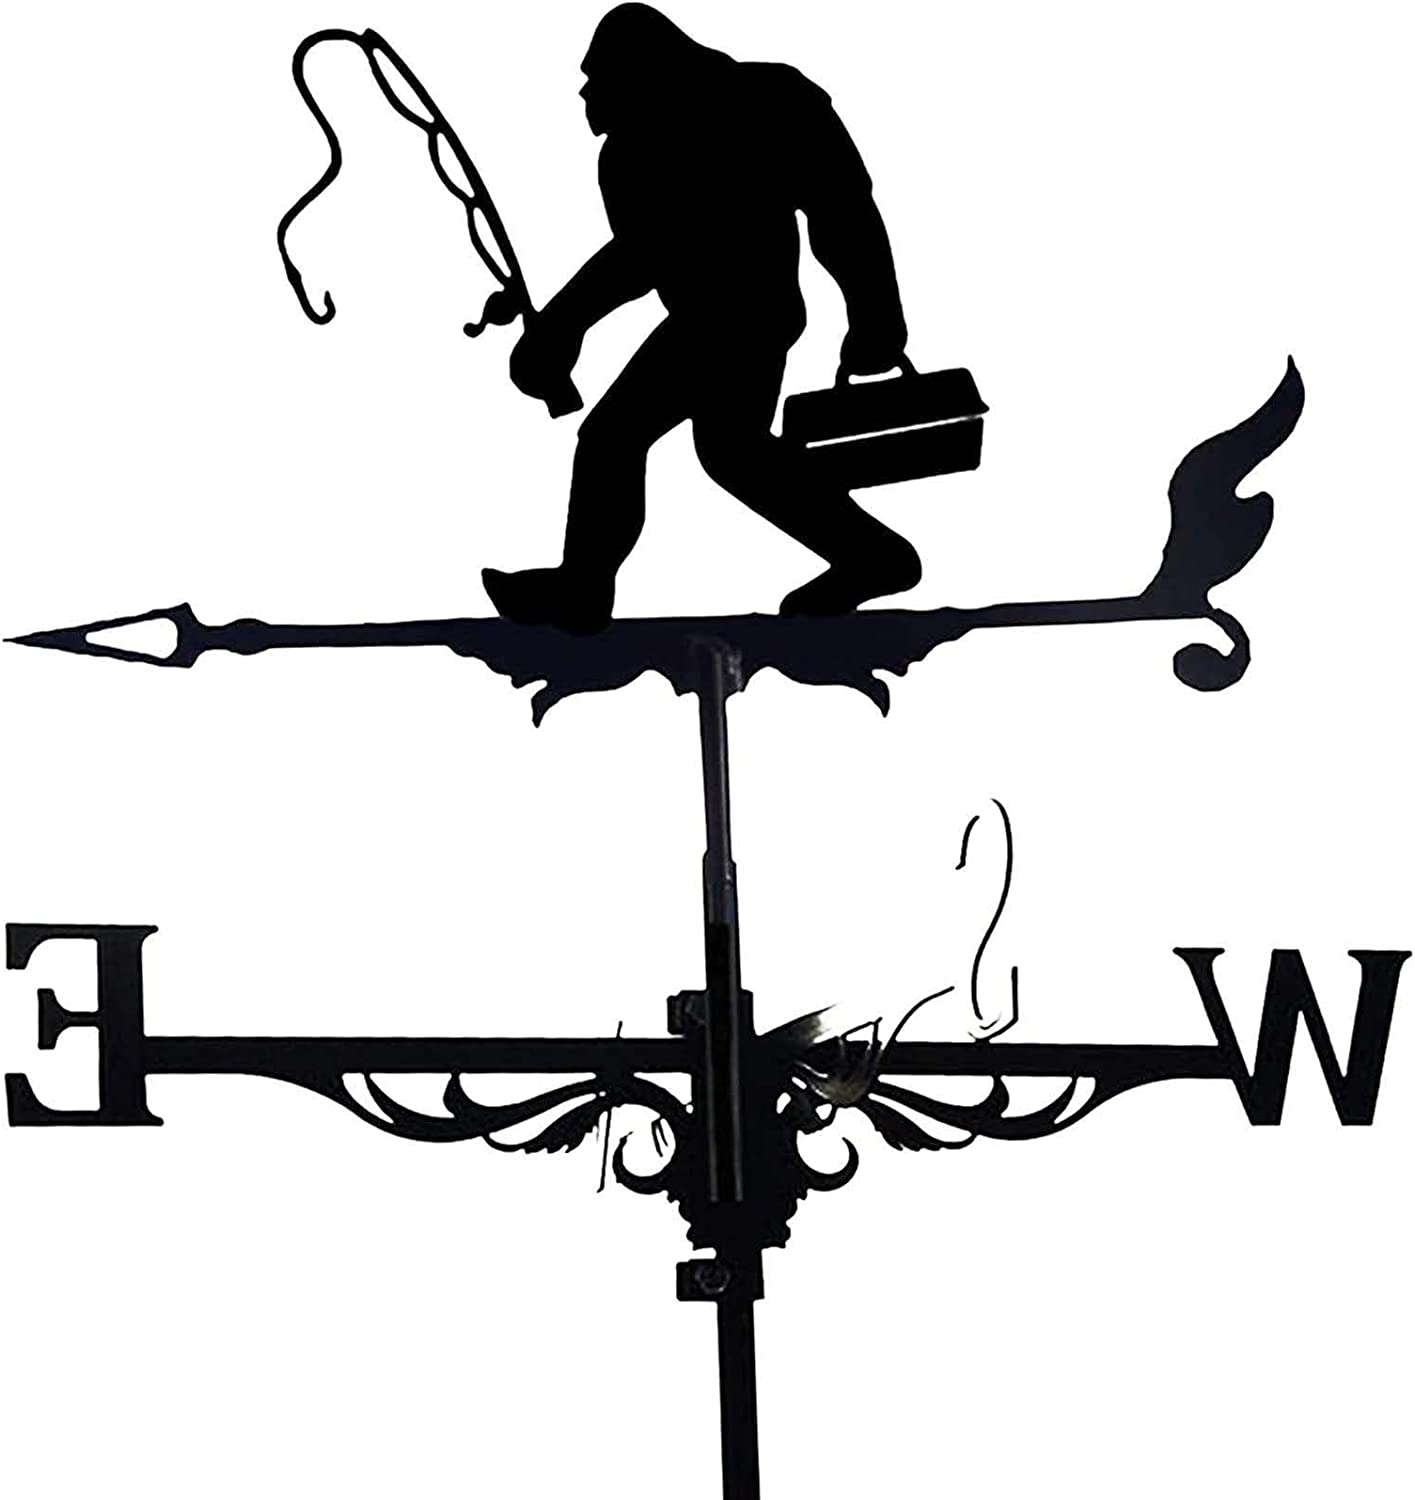 JHWSX Weather Vane 13.75x33.85inch Metal Weathervane with Max 74% OFF Roof OFFicial shop